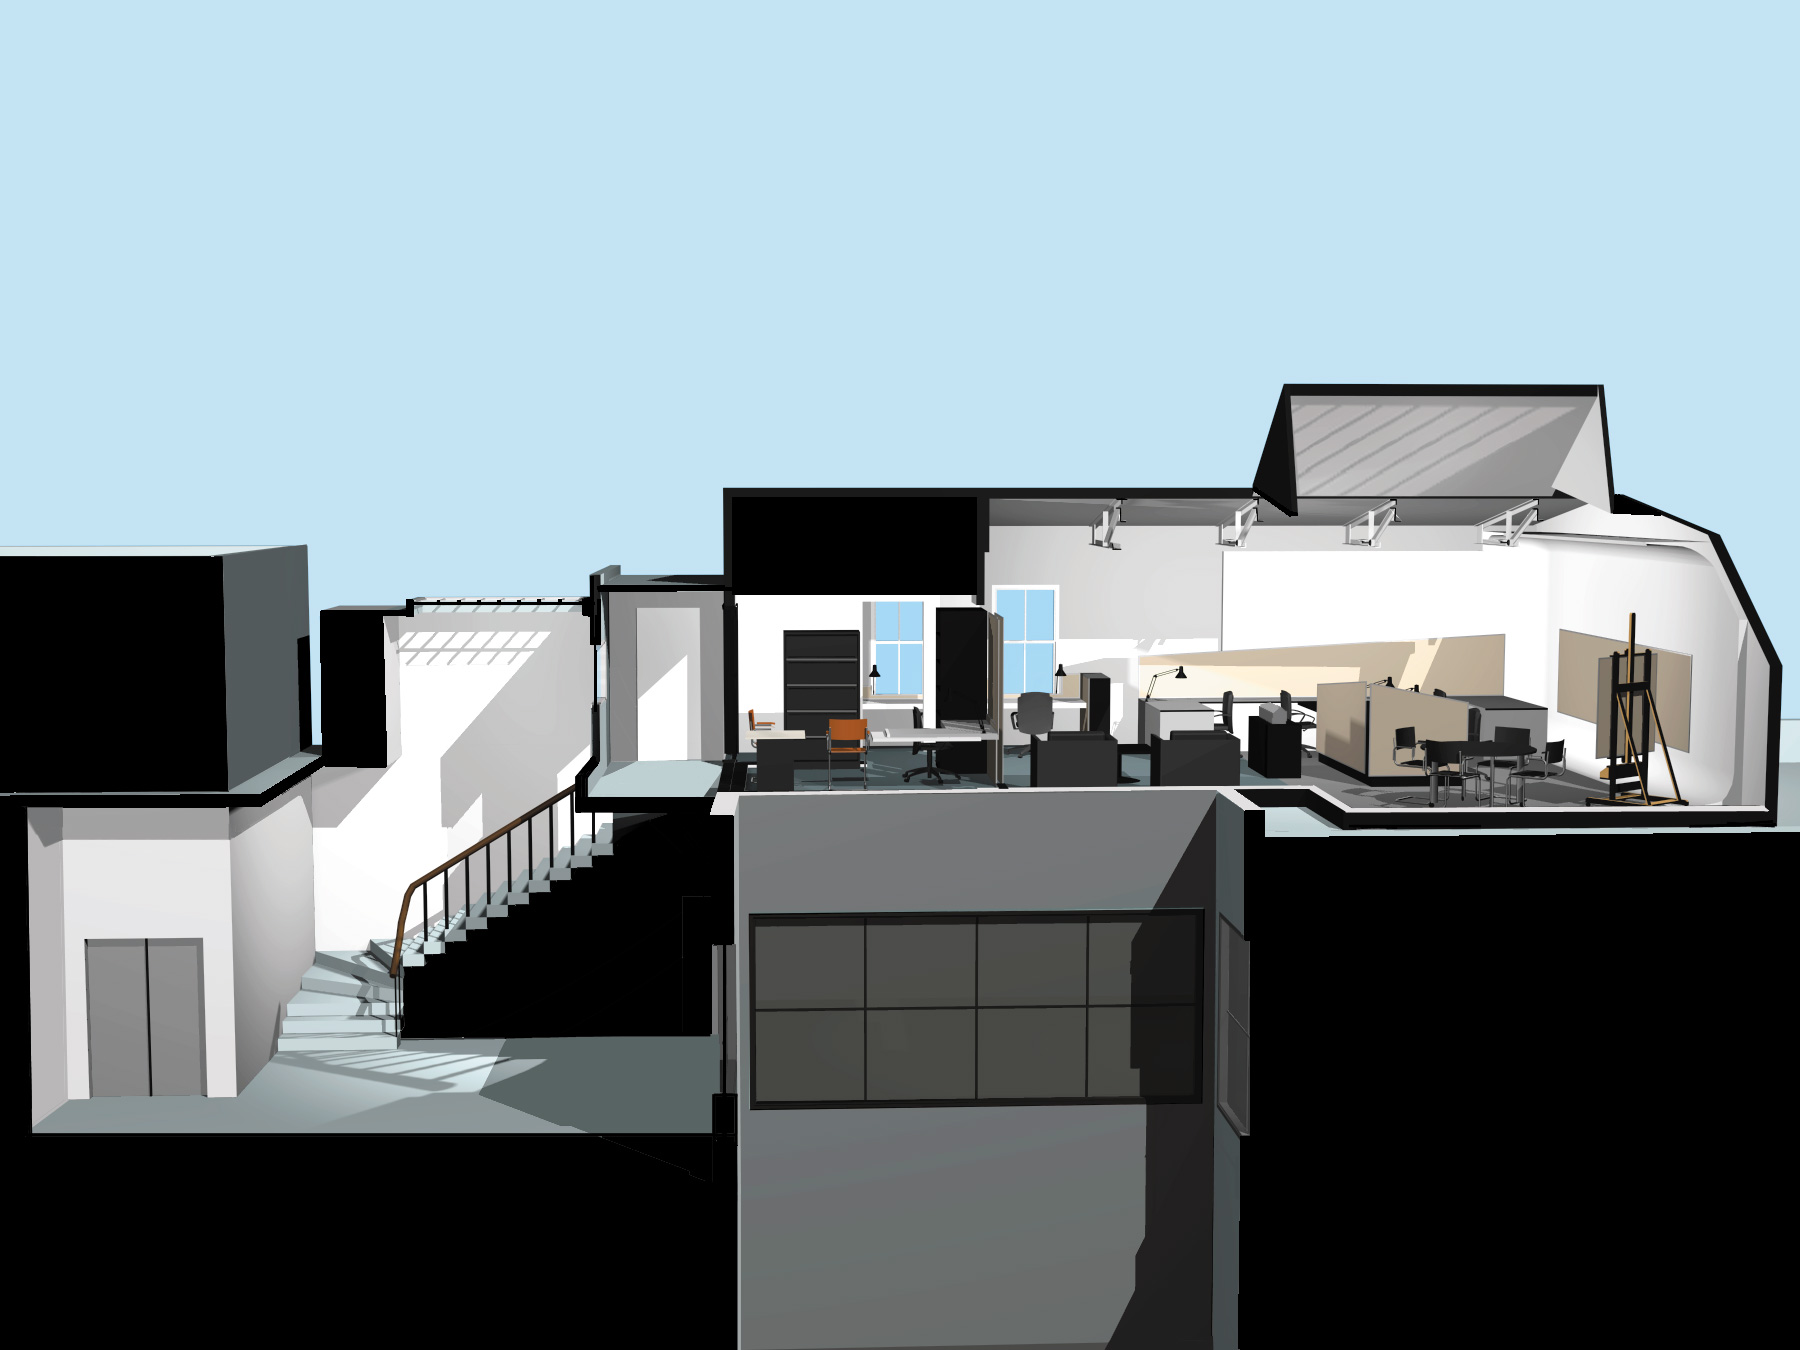 Fifth Avenue Penthouse Section/Perspective